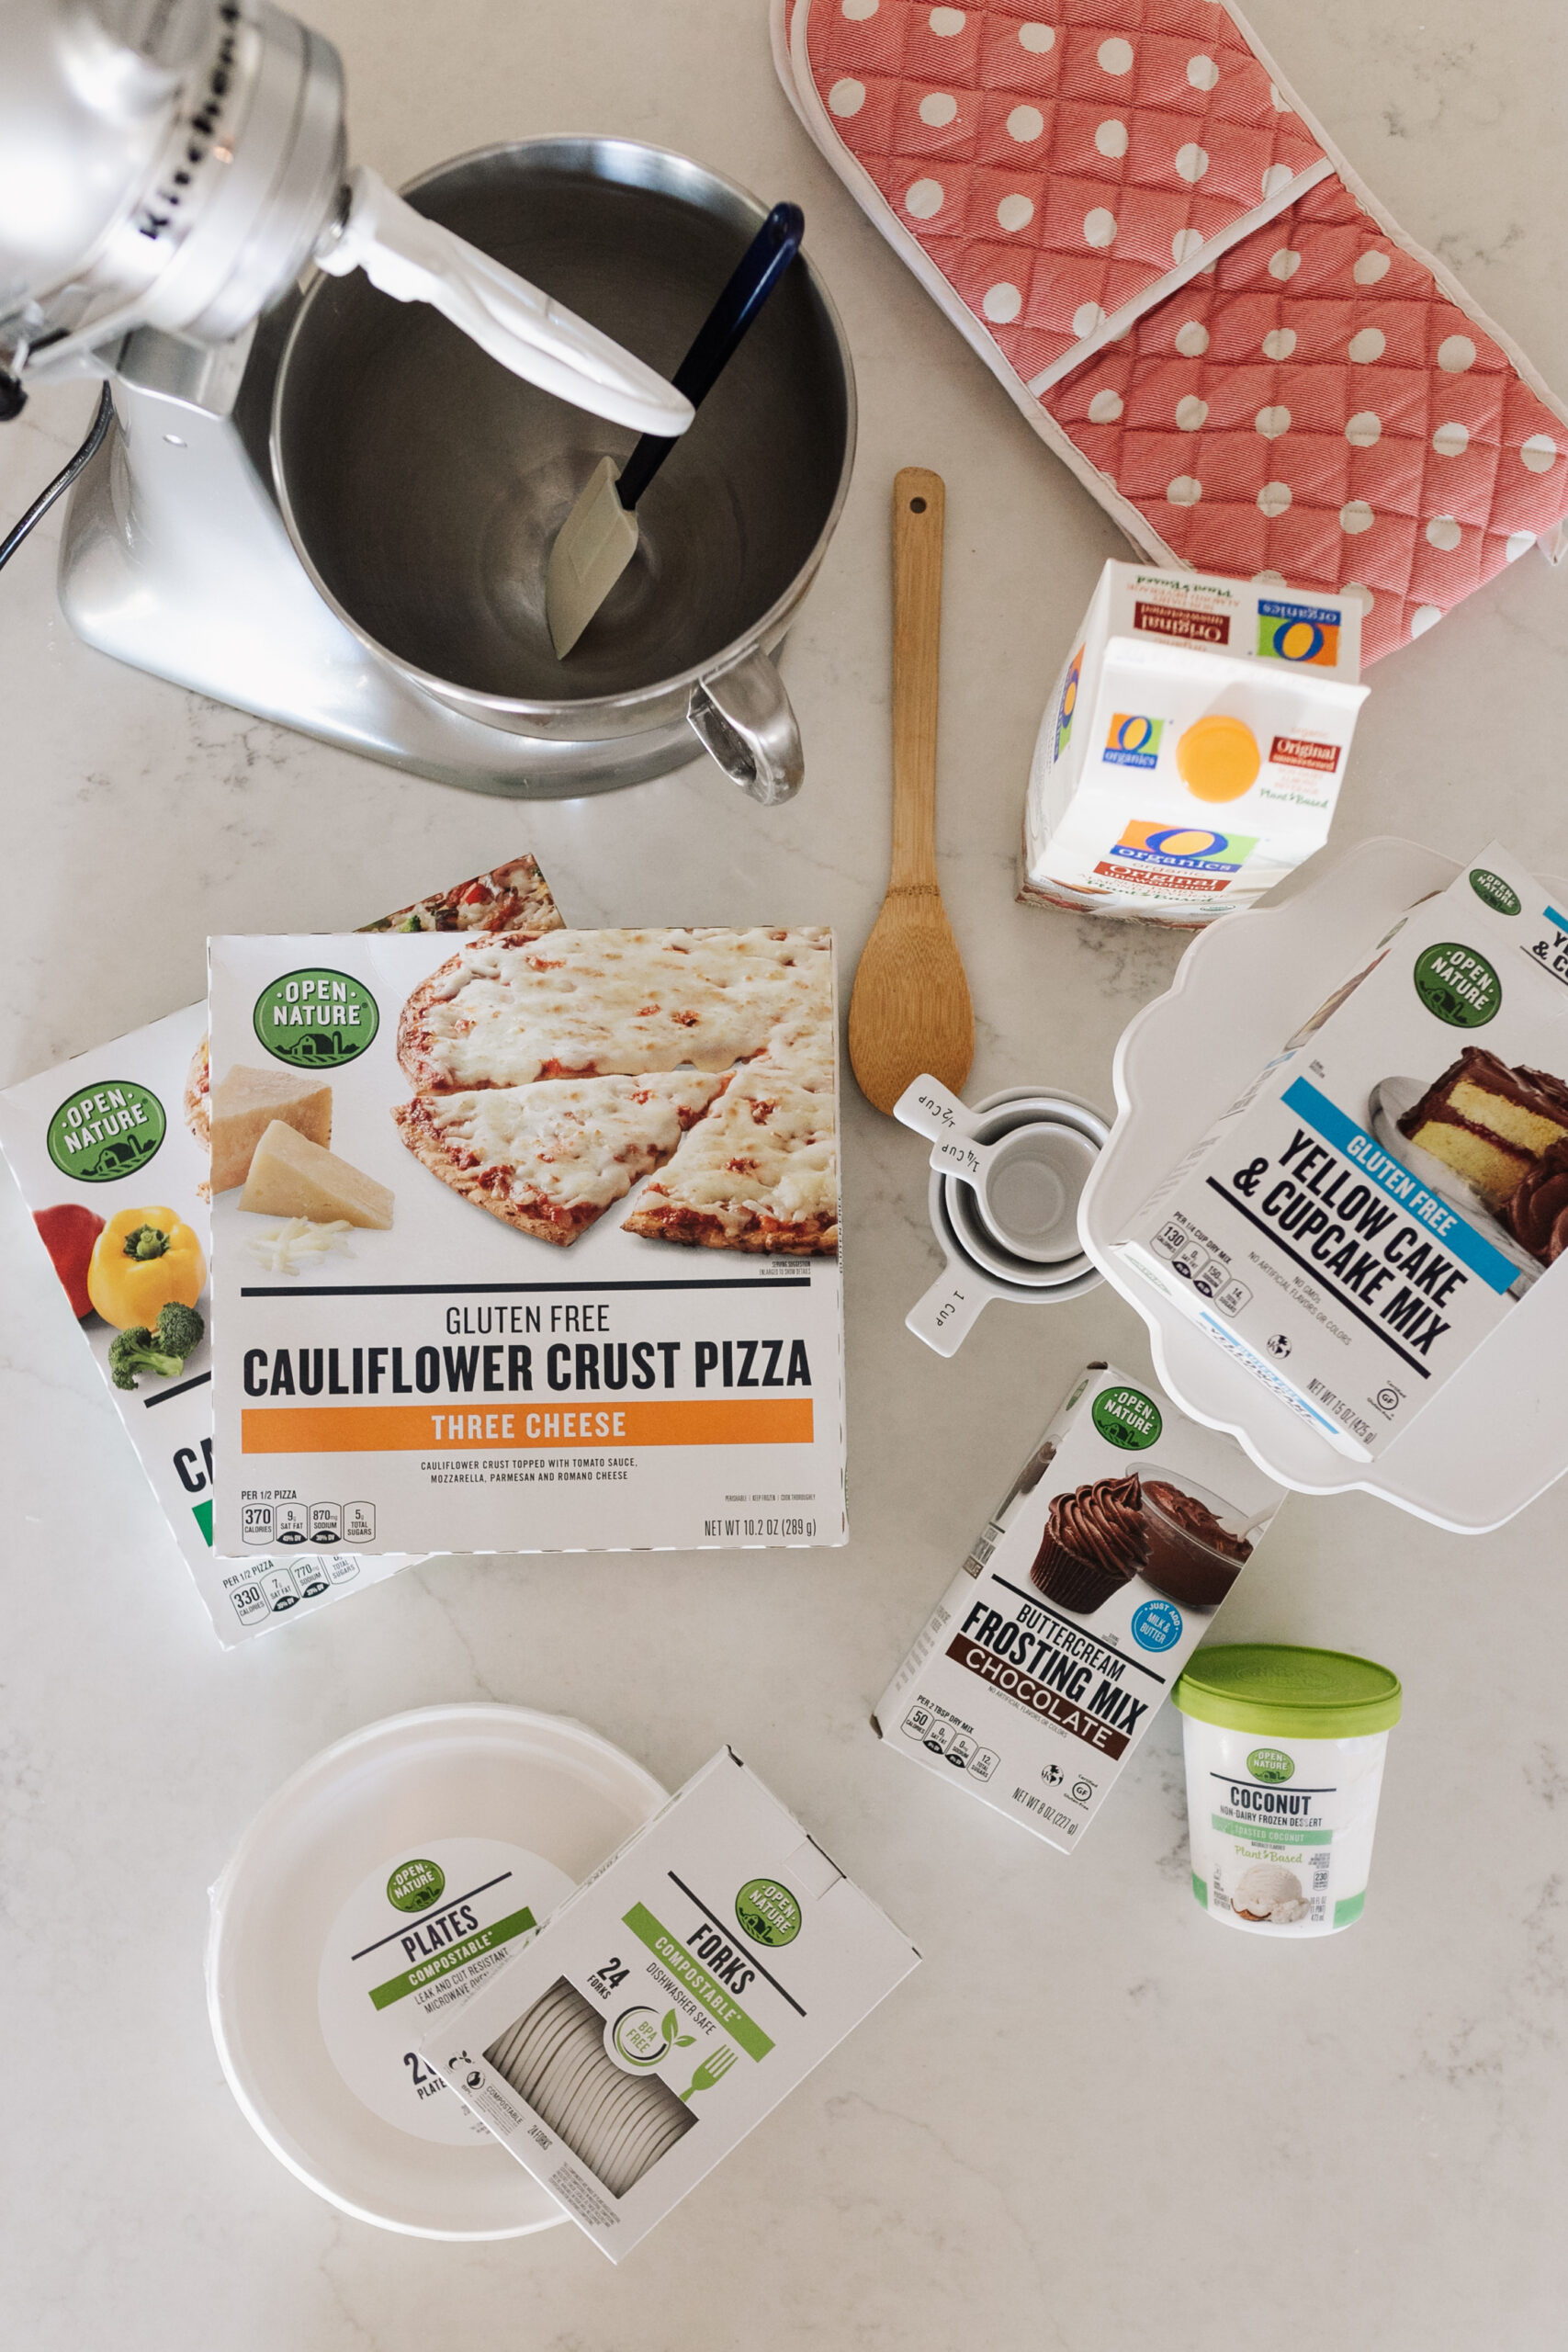 all the ingredients for a tasty, gluten and dairy free meal, right from our local Safeway! @safeway #safeway #albertsons #safewaypartner